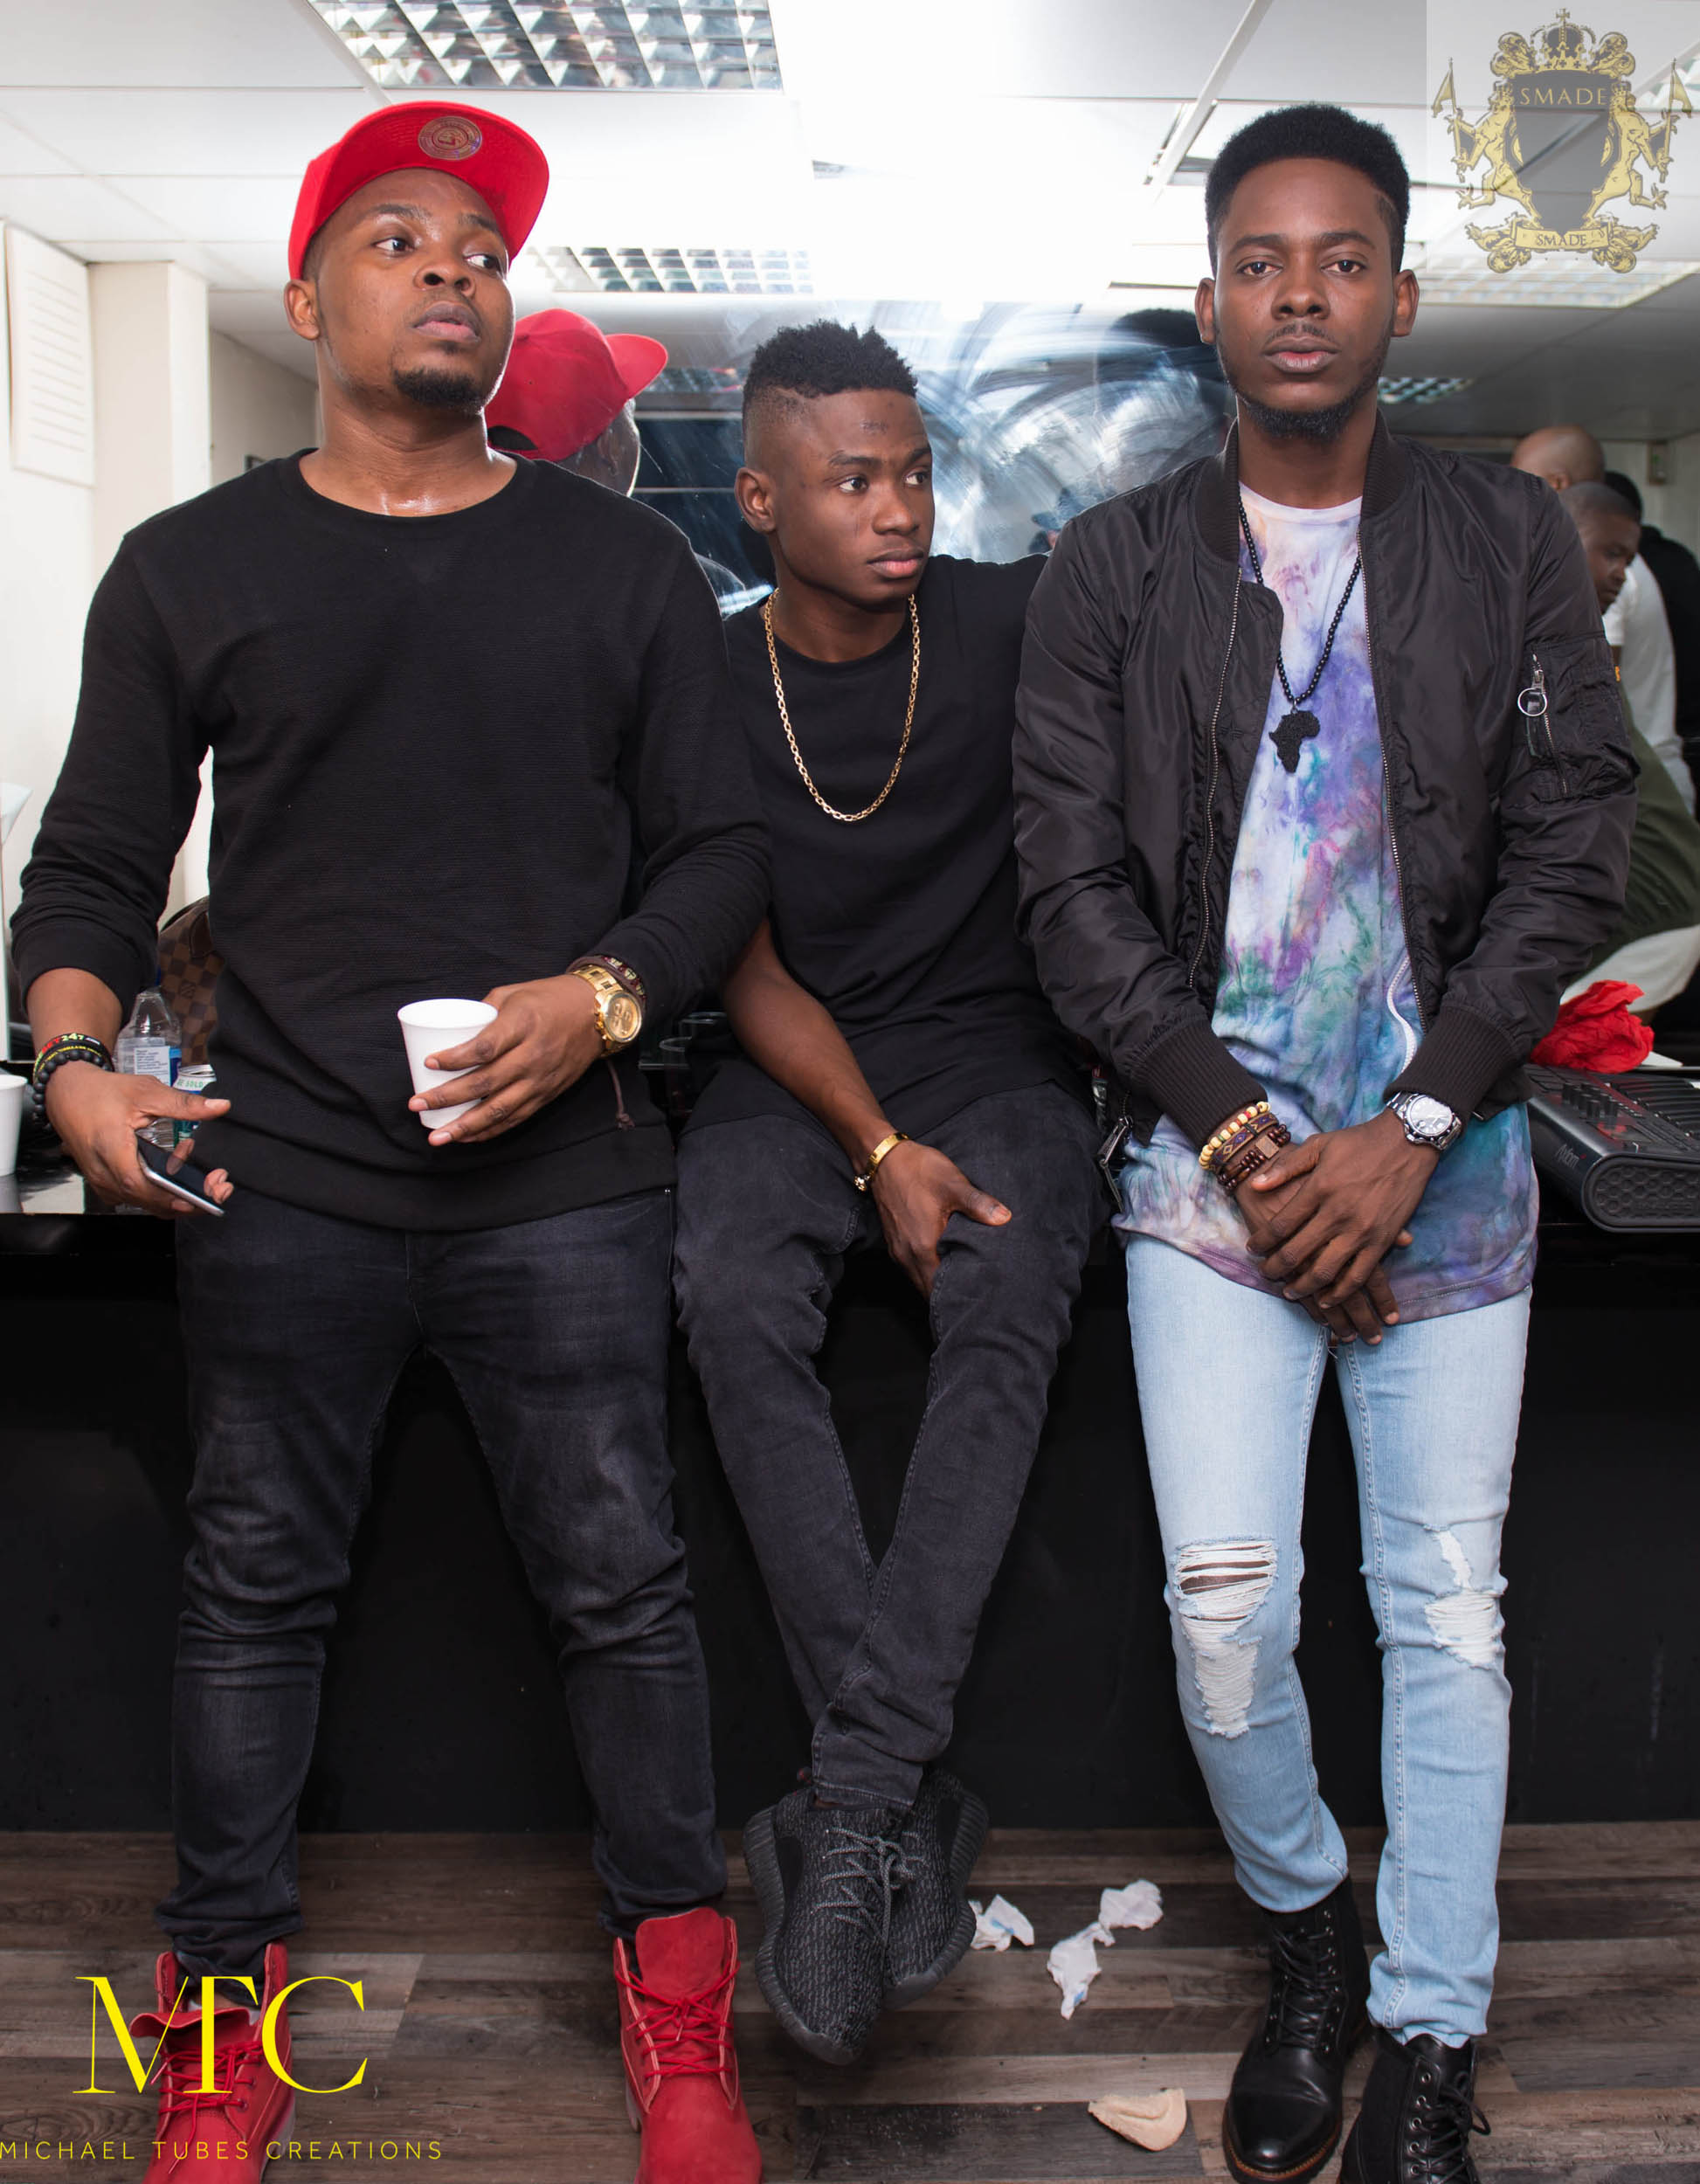 Olamide Rapper restructuring YBNL Nation with addition of